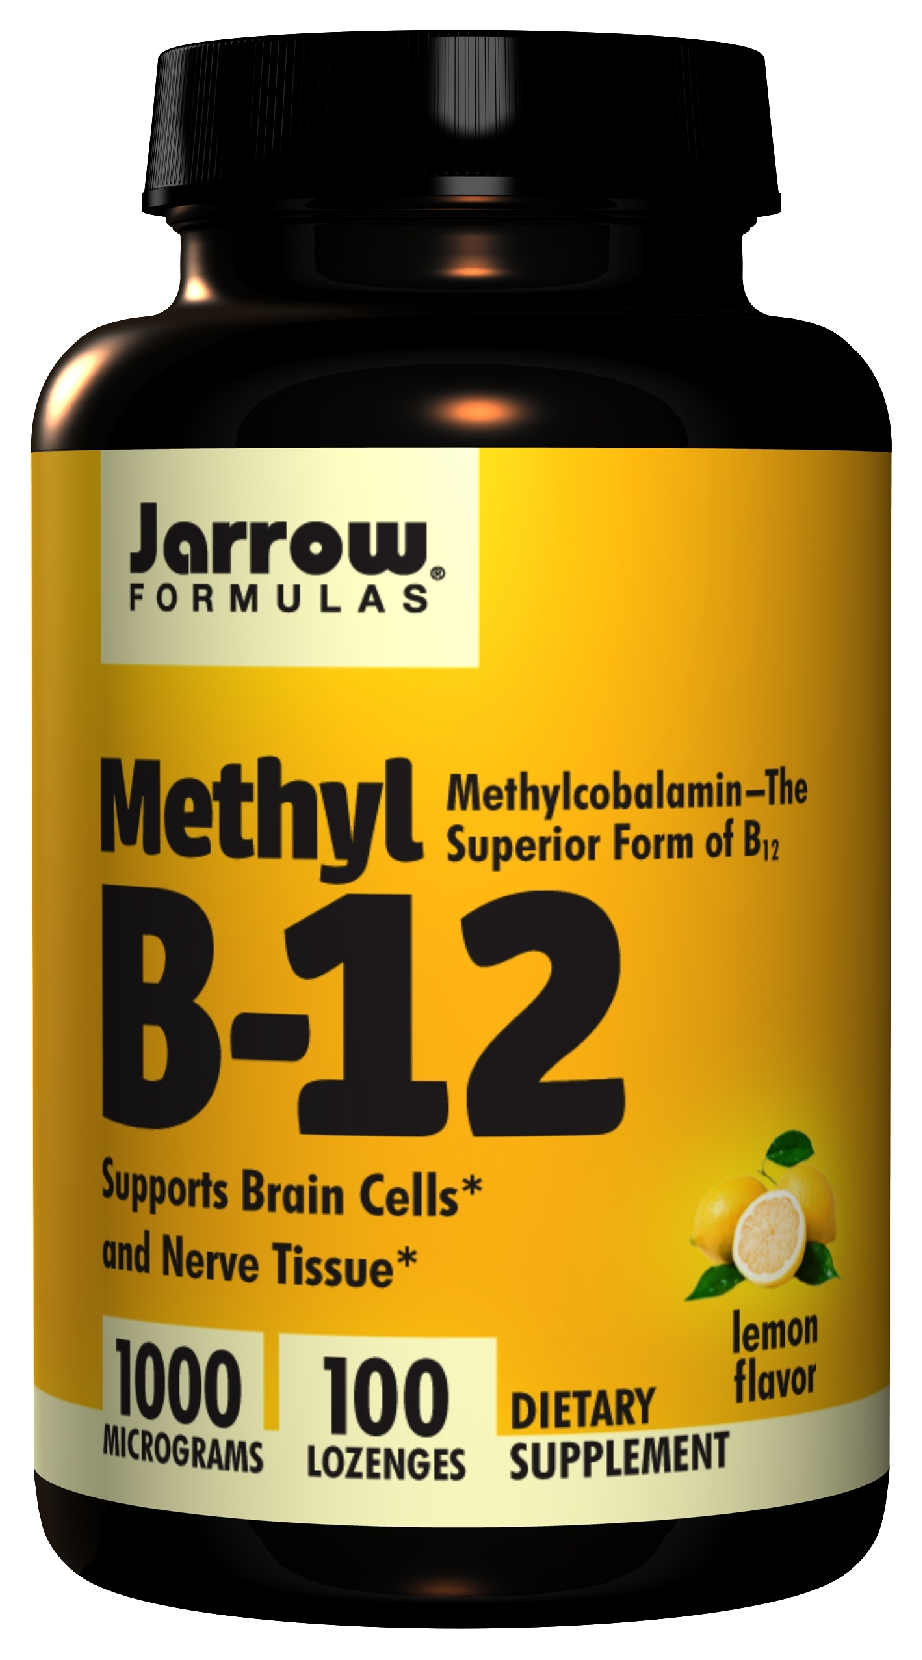 Methyl B-12 1000 mcg 100 Lozenges by Jarrow Formulas